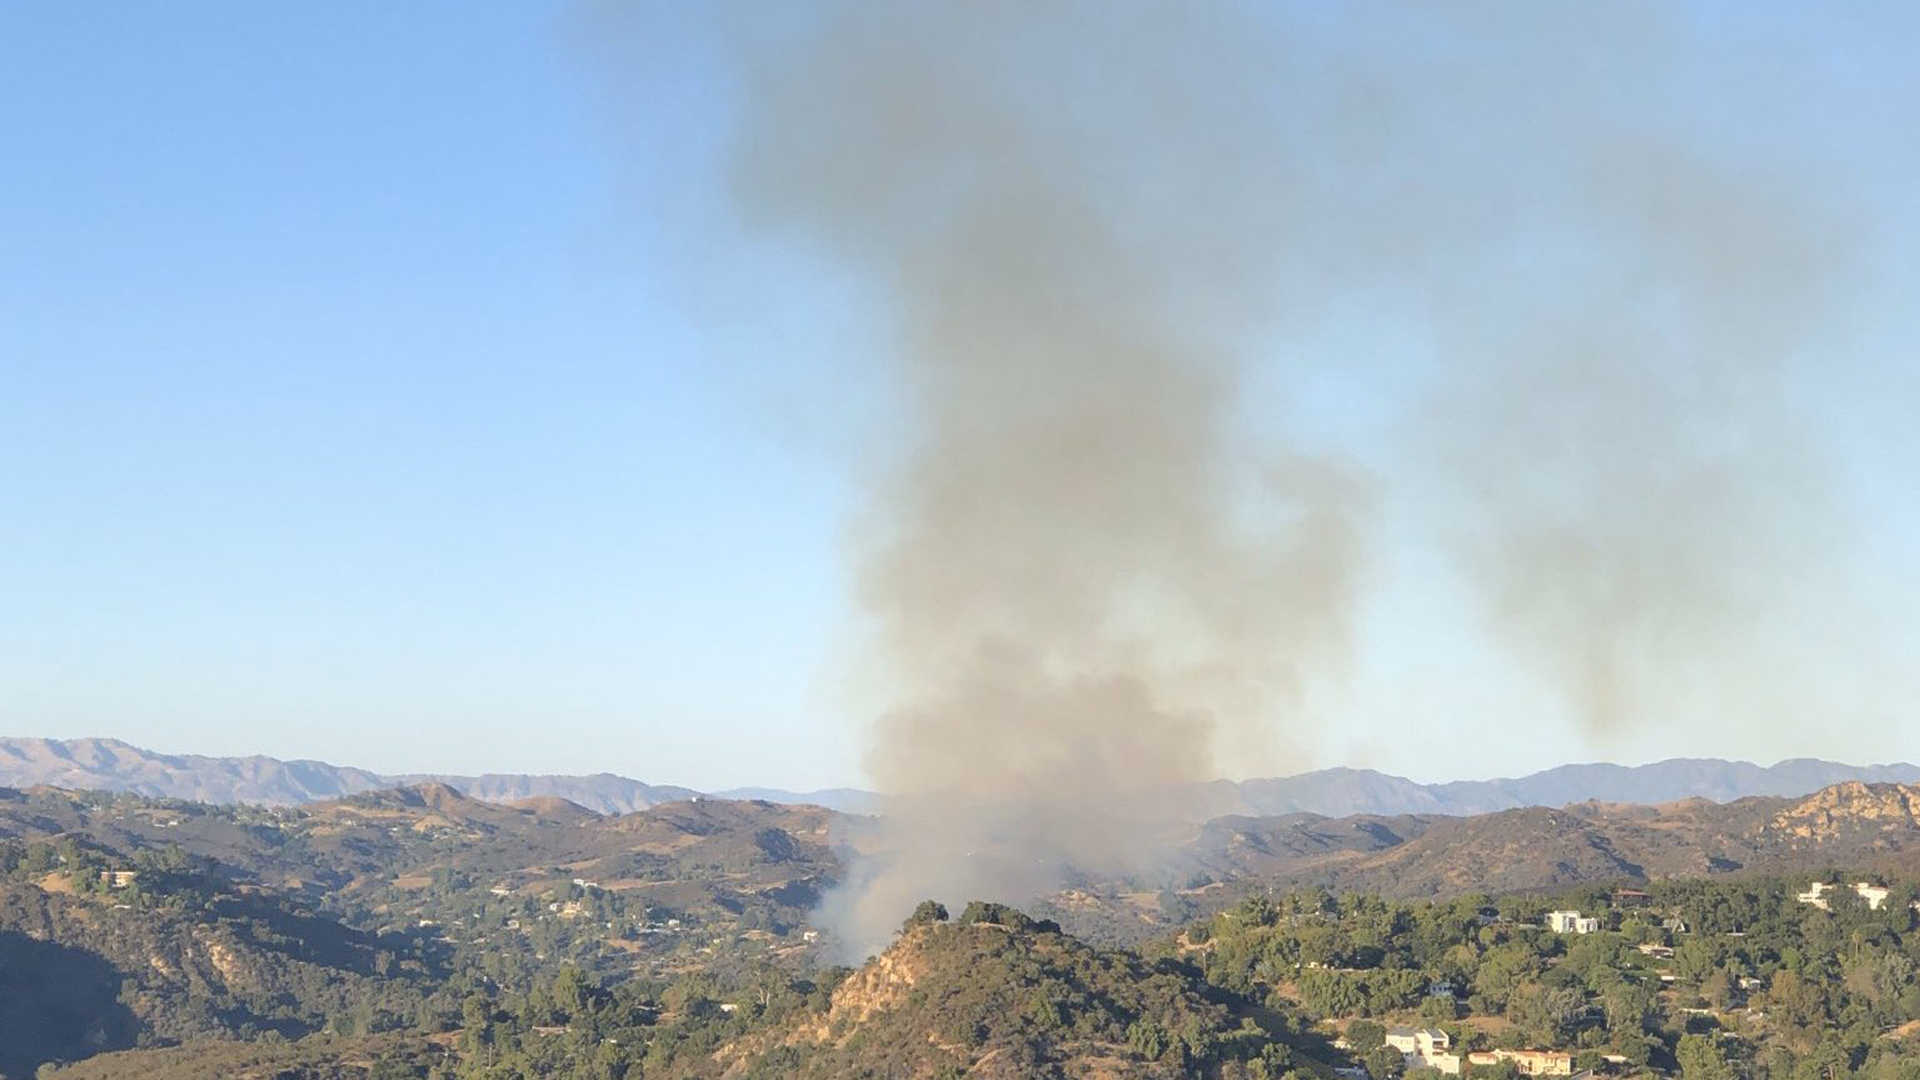 A brush fire ignited along Topanga Canyon Boulevard in Topanga on Nov. 16, 2019. (Credit: Los Angeles County Fire Department Air Operations Section)